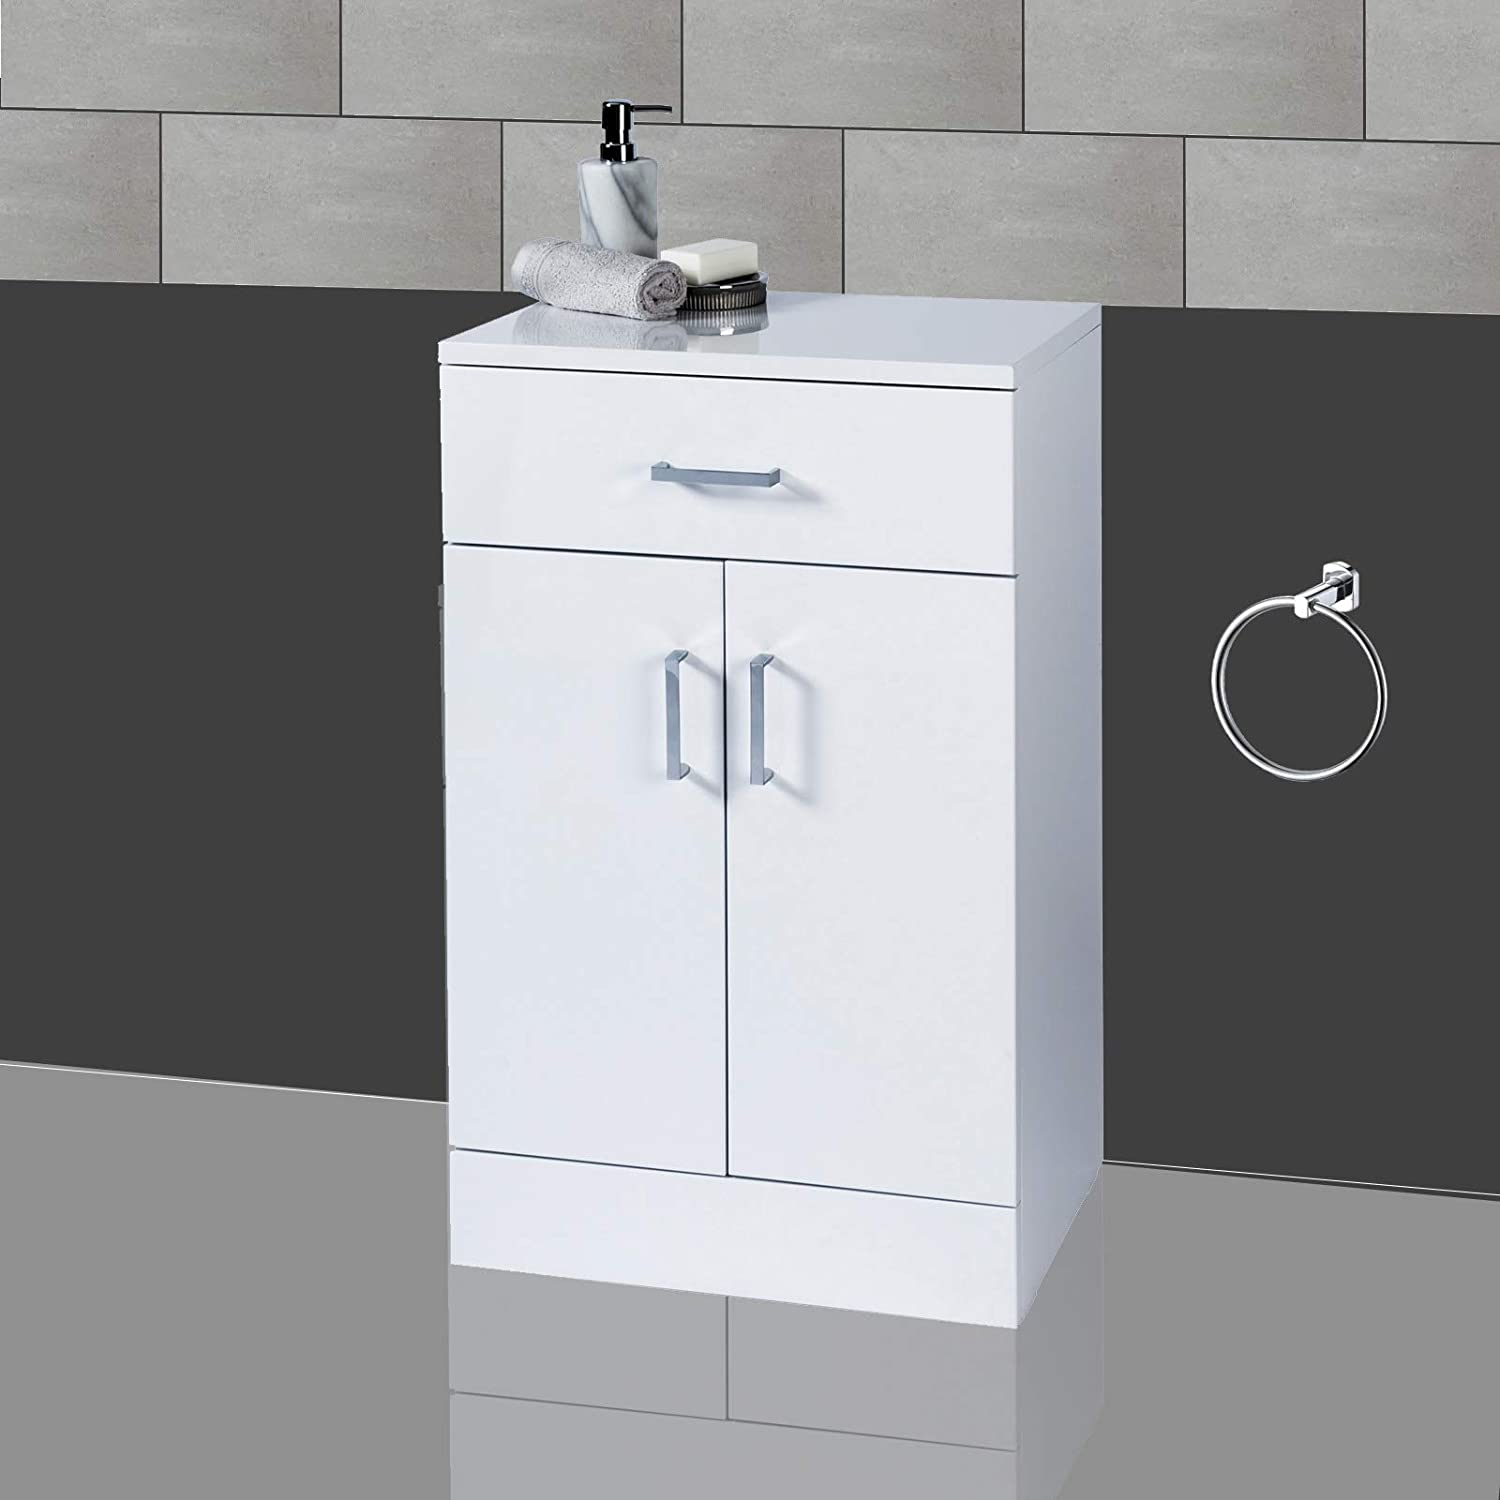 Fantastic Showerdrape Salerno Freestanding White Gloss Bathroom Cabinet Home Interior And Landscaping Ologienasavecom